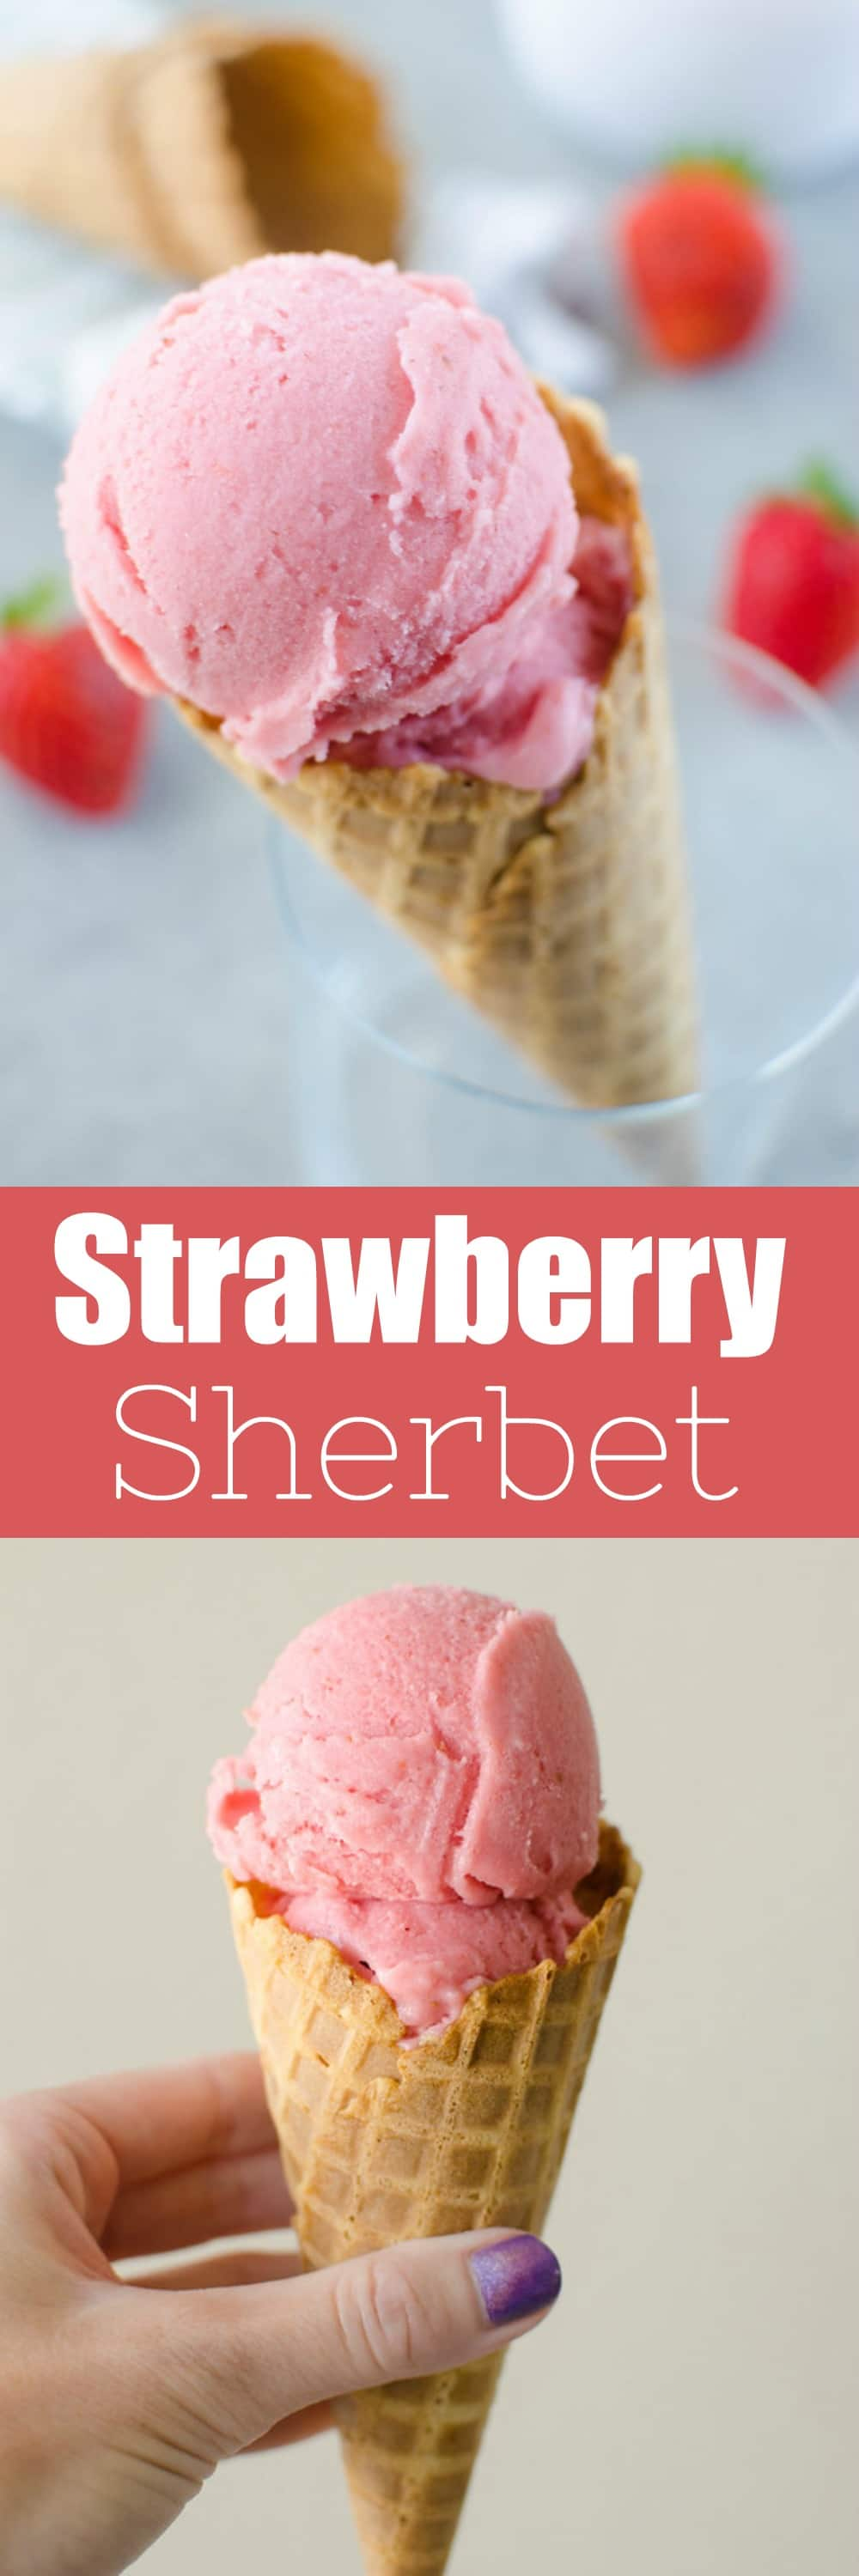 Homemade Strawberry Sherbet - you will never buy store-bought sherbet after trying this recipe! Sweet, creamy, and the perfect summer treat. So easy and only 4 ingredients!